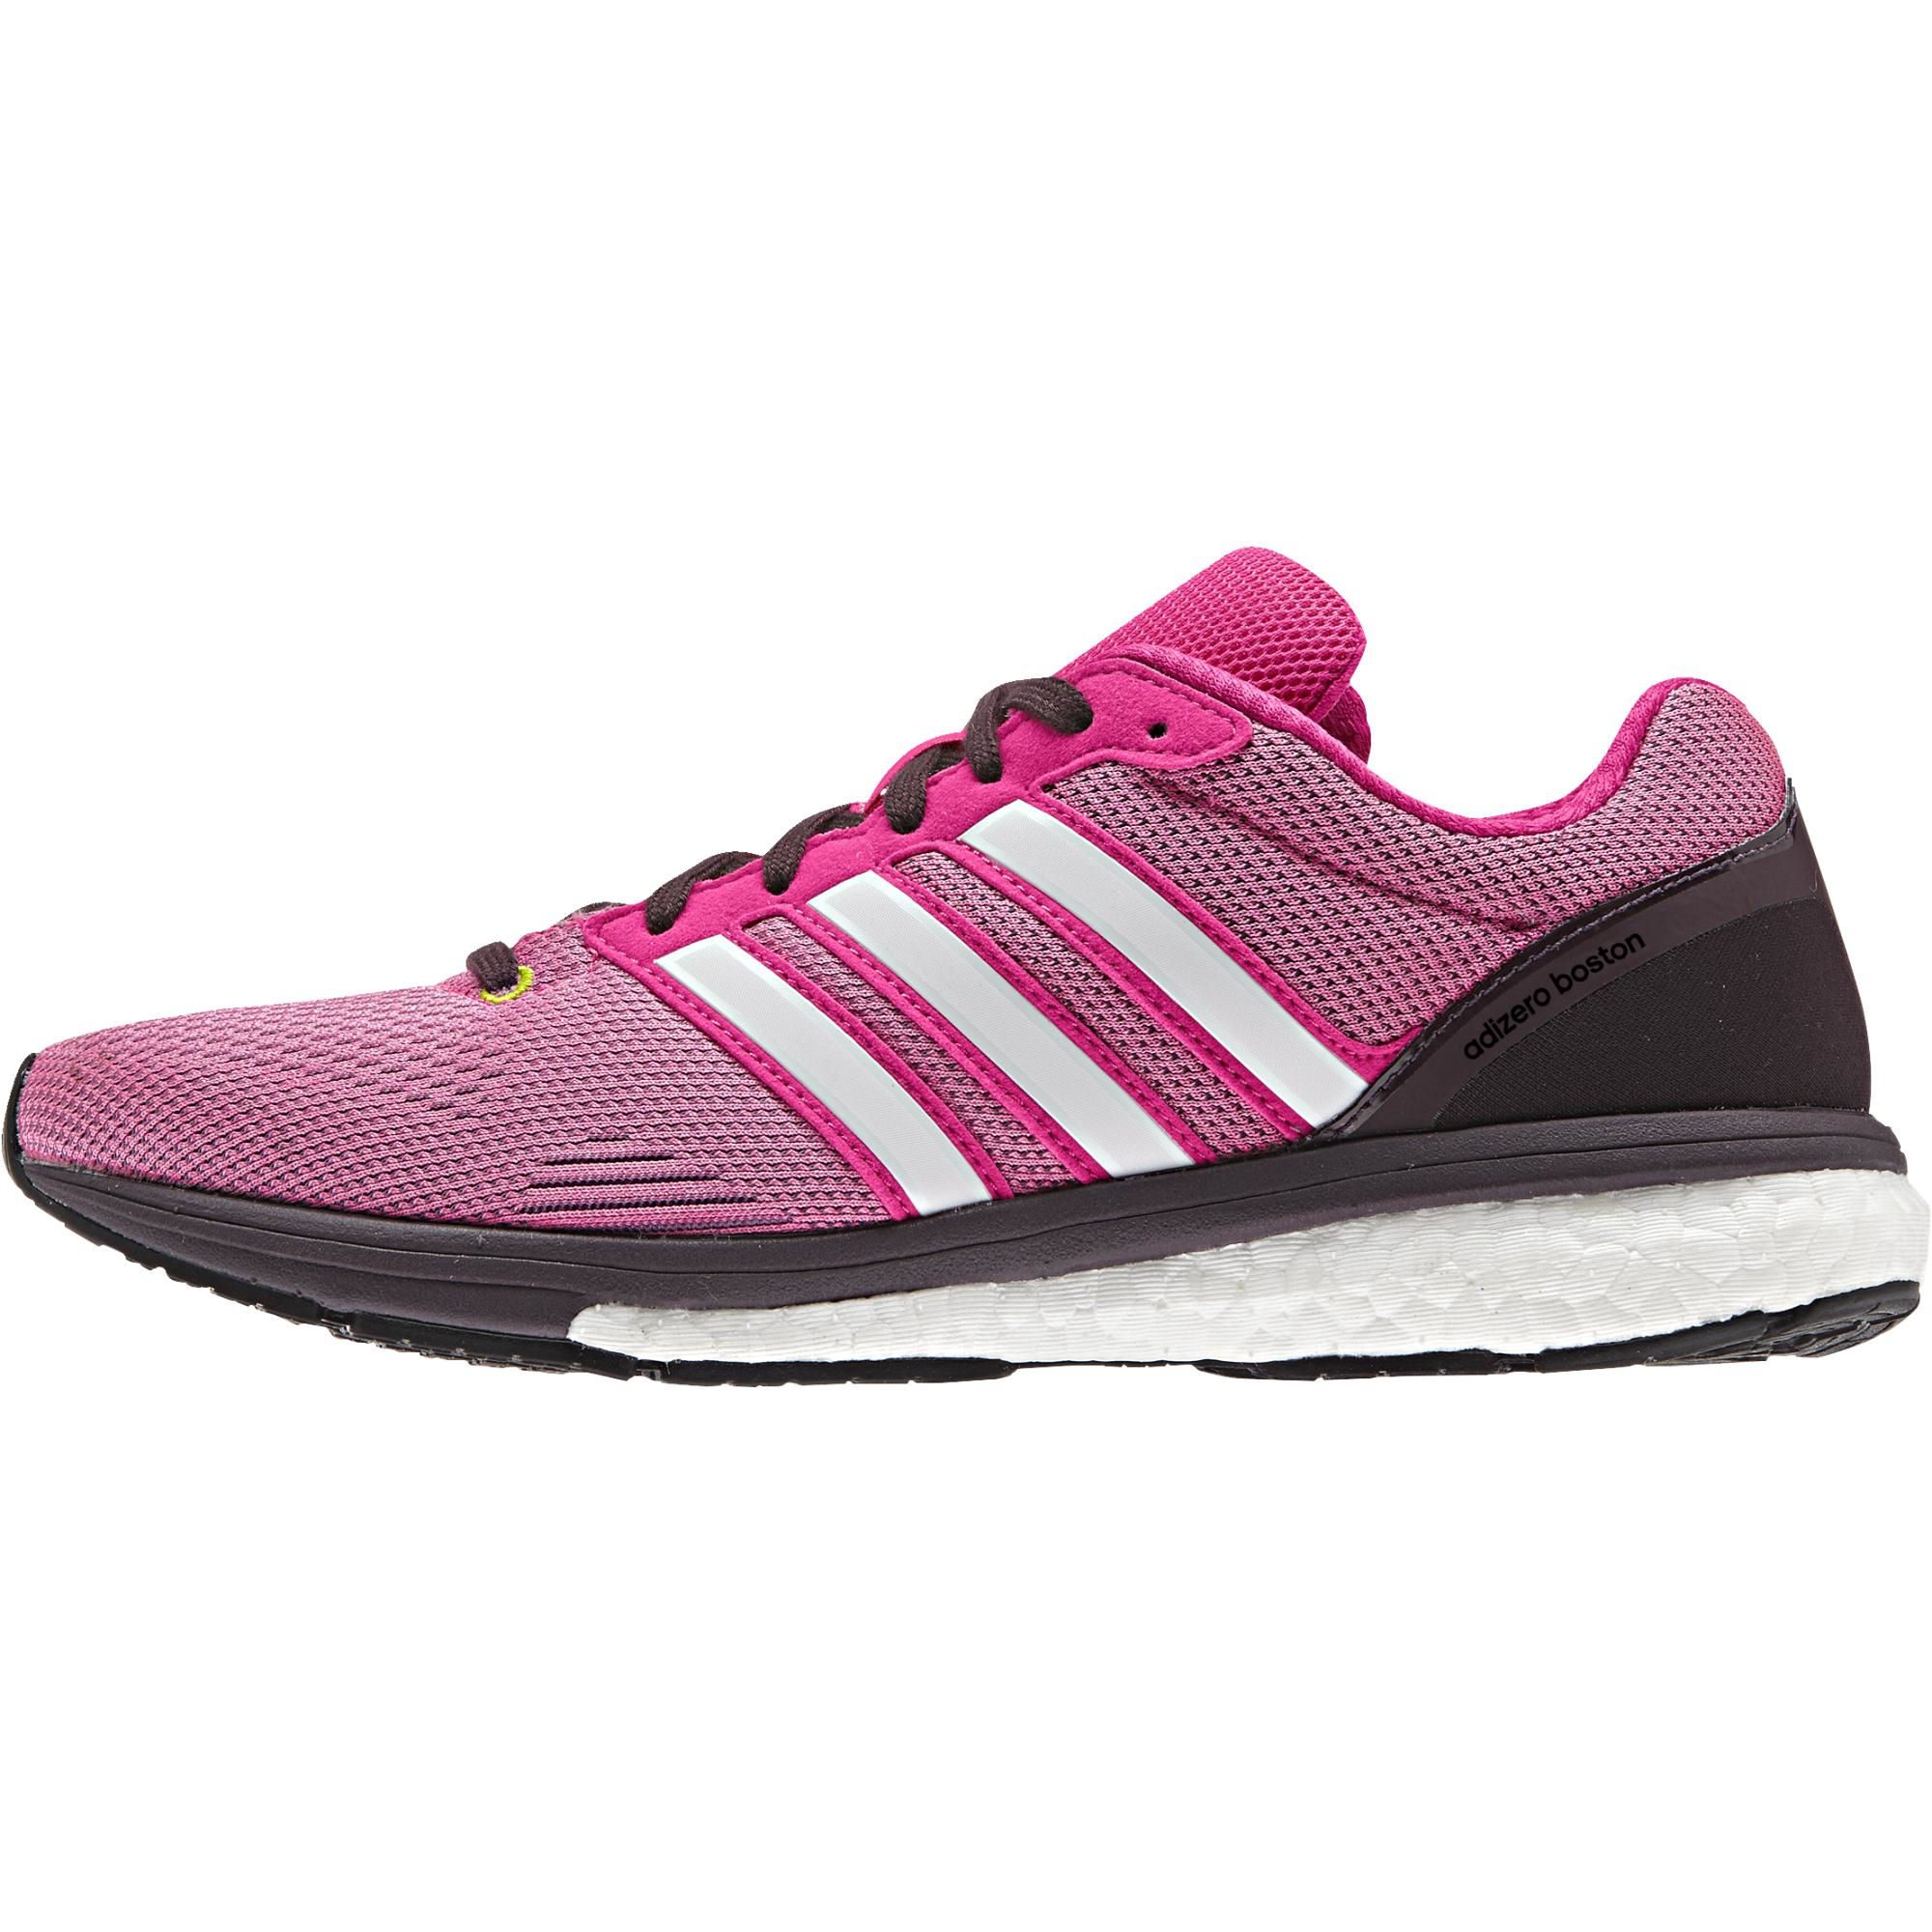 wiggle adidas women 39 s adizero boston boost 5 tsf shoes ss16 racing running shoes. Black Bedroom Furniture Sets. Home Design Ideas